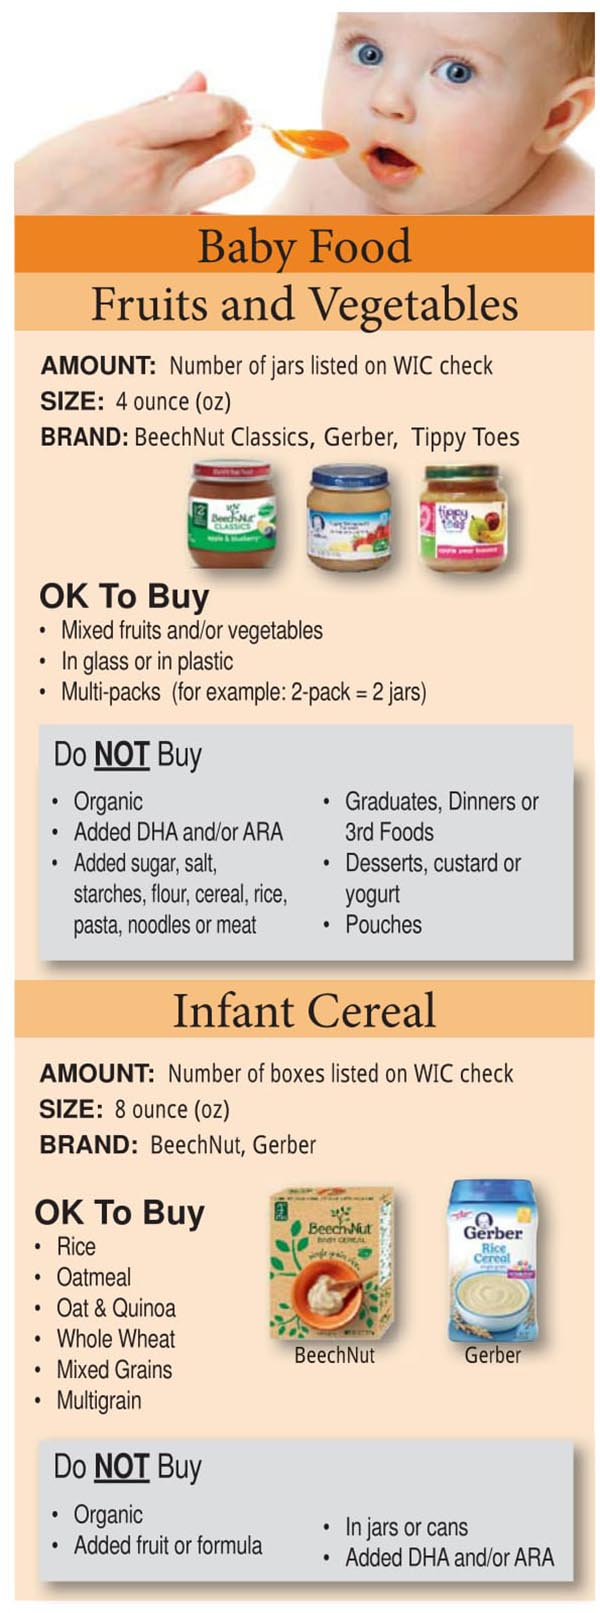 Colorado WIC Food List Baby Foods, Infant Cereal, Fruits and Vegetables